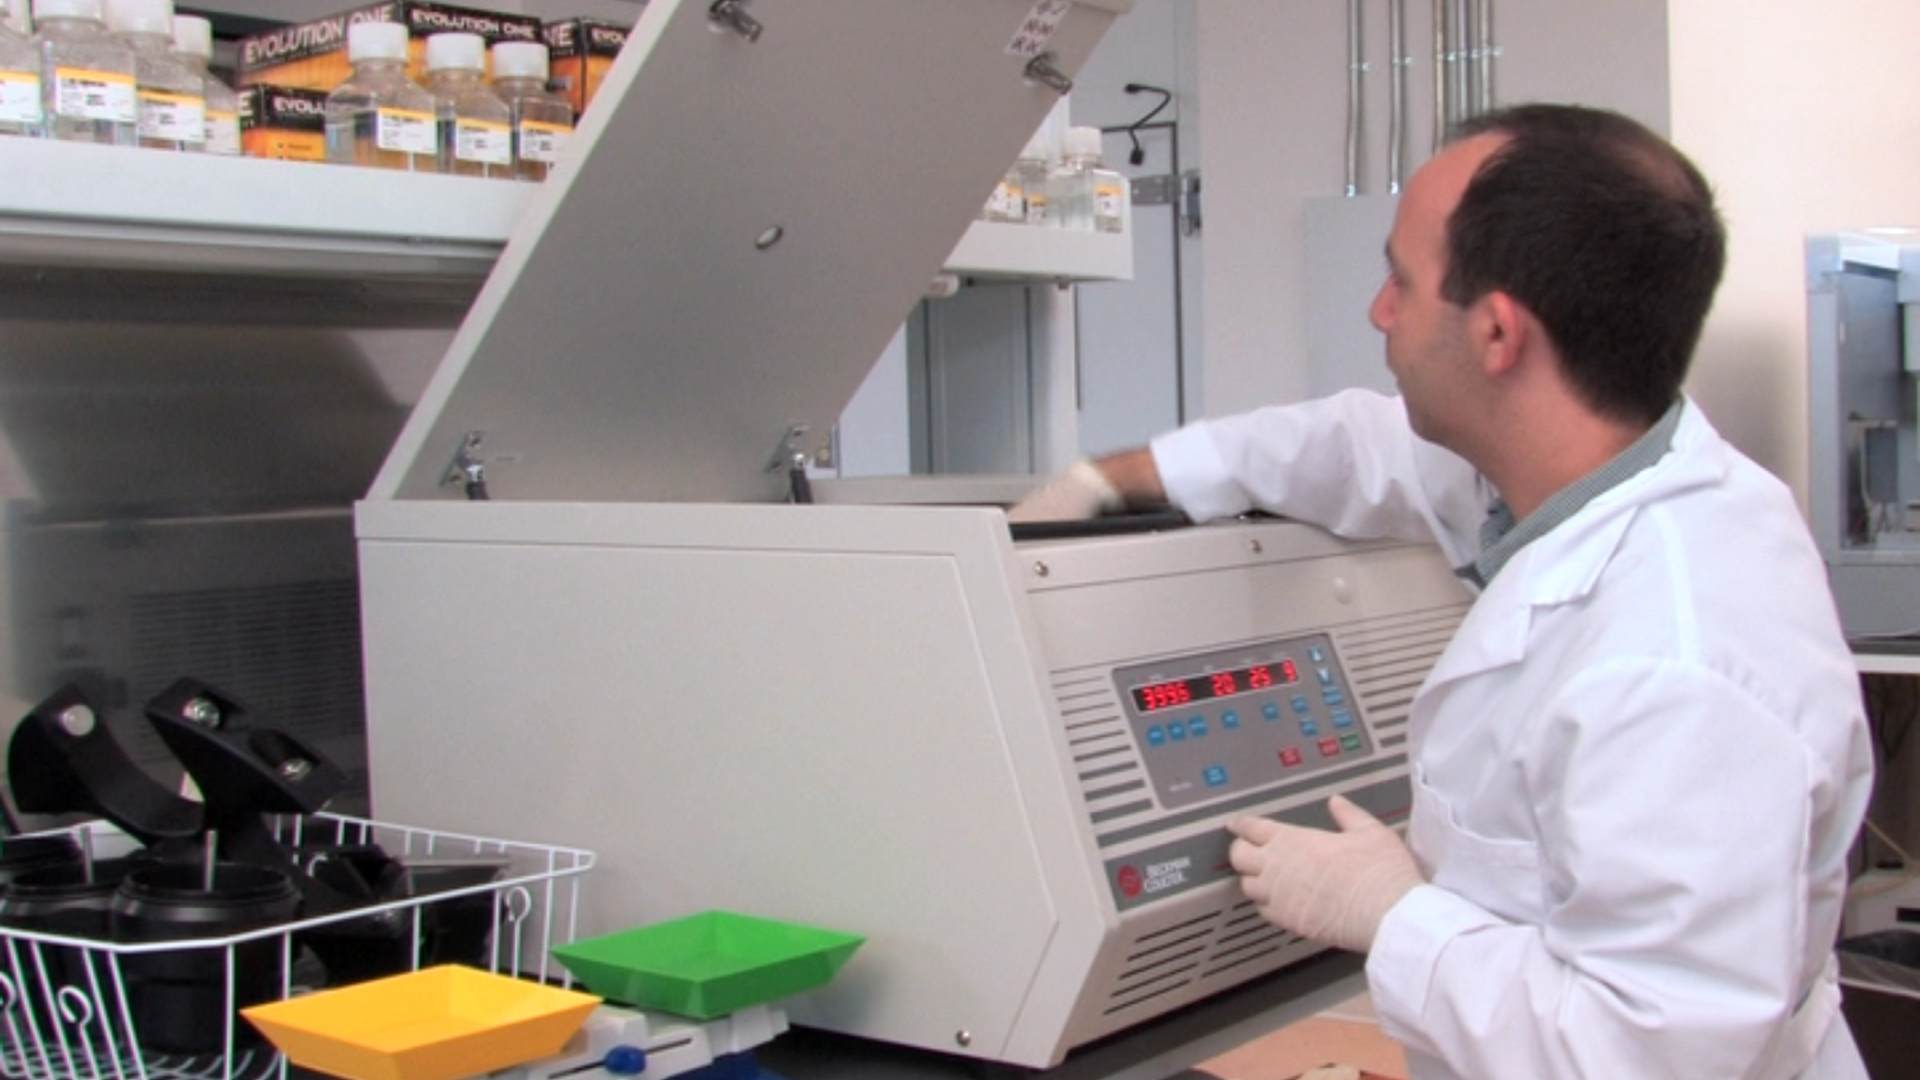 Infinium Assay for Large-scale SNP Genotyping Applications